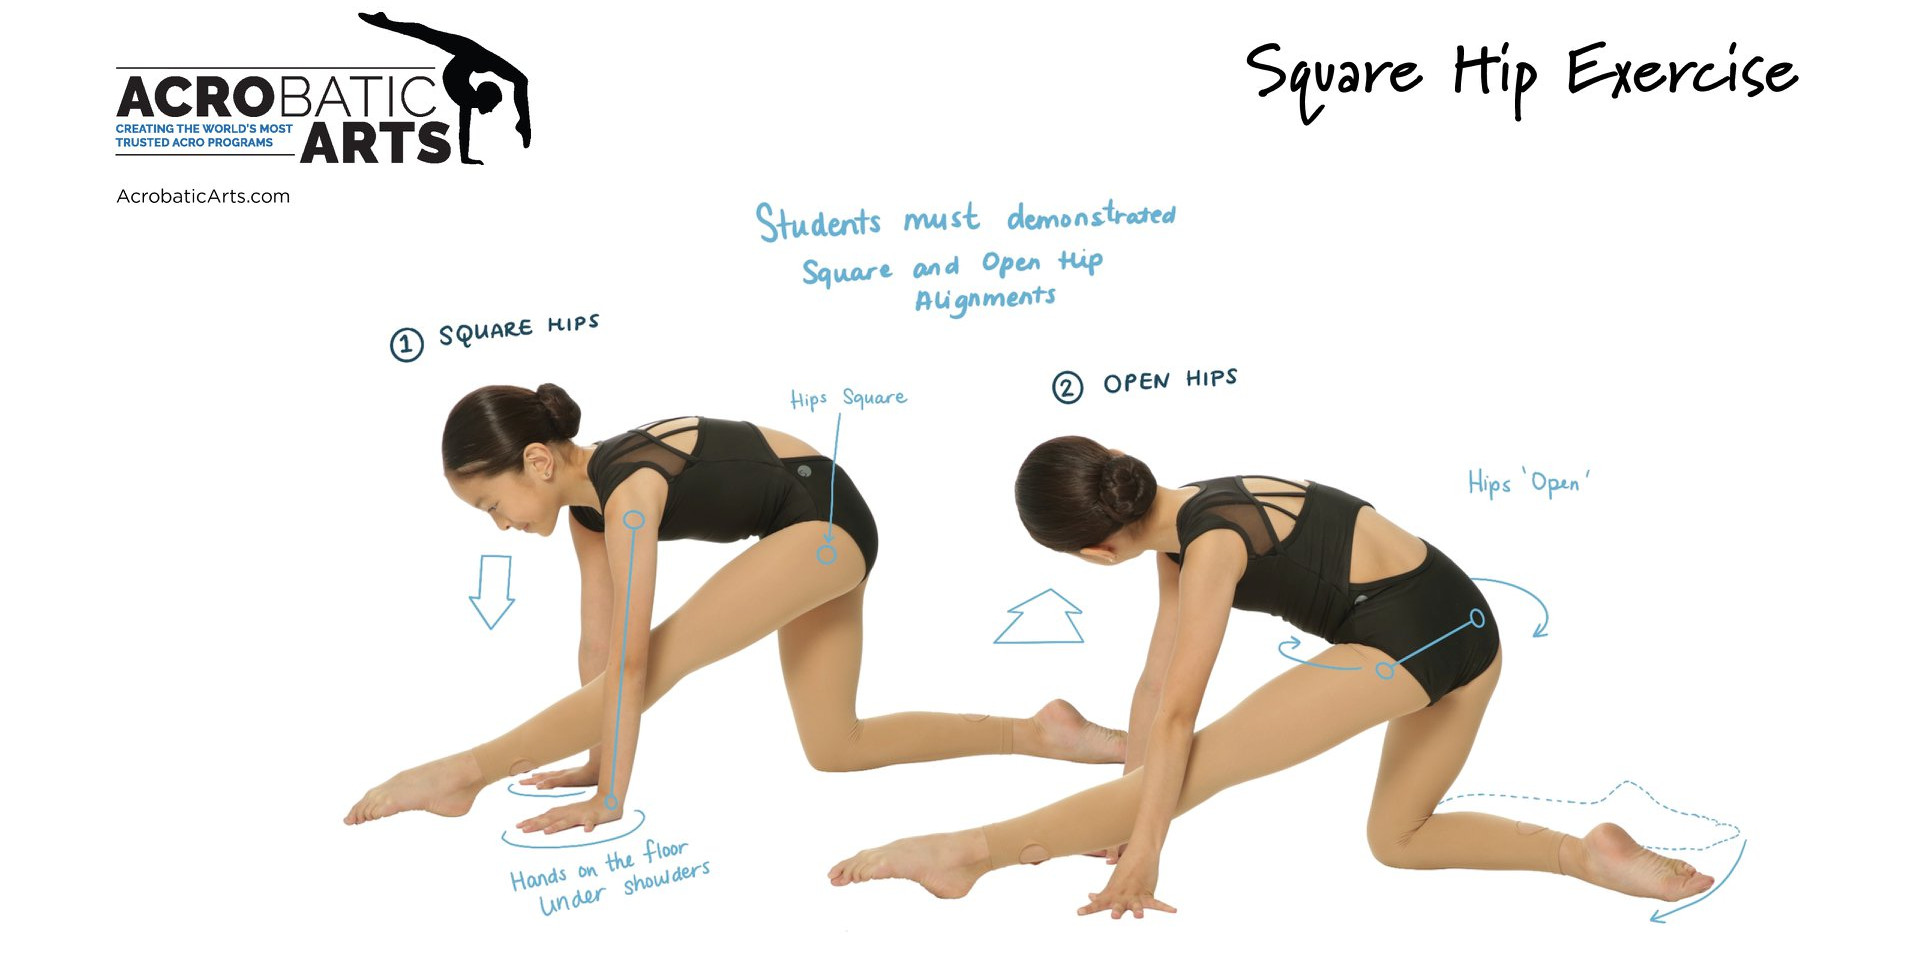 Square Hip Exercise.jpg